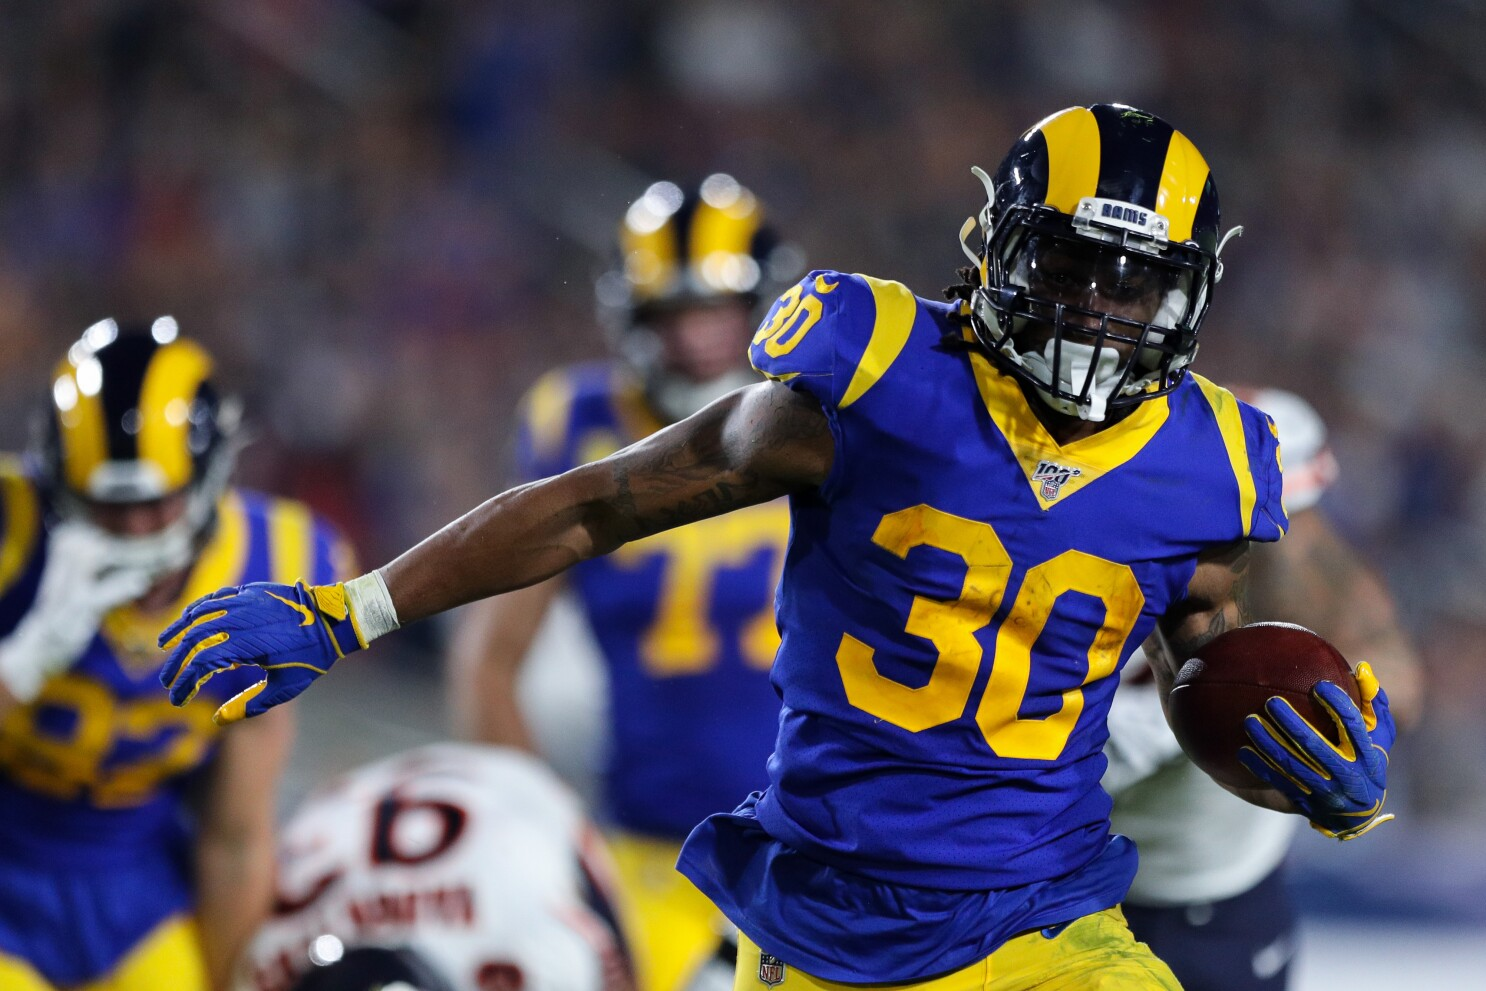 Todd Gurley Will Sign With The Atlanta Falcons The San Diego Union Tribune